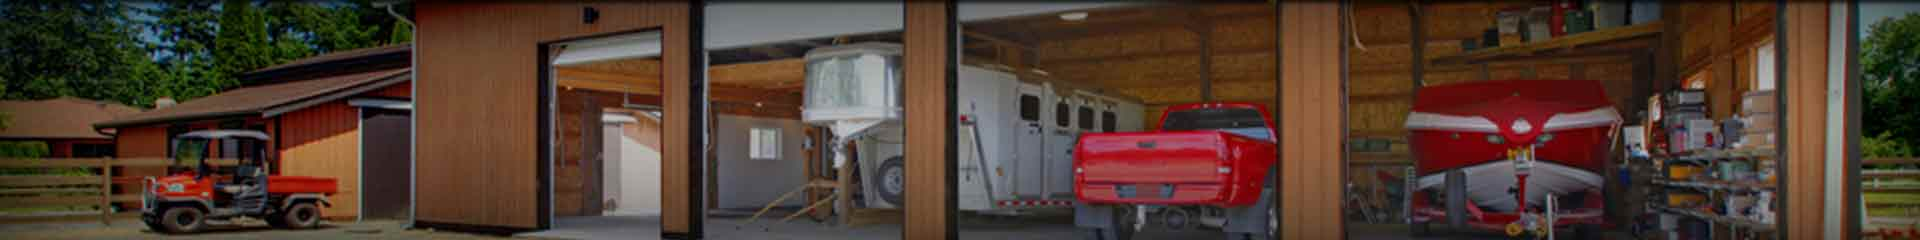 Garage Door Repair Maricopa